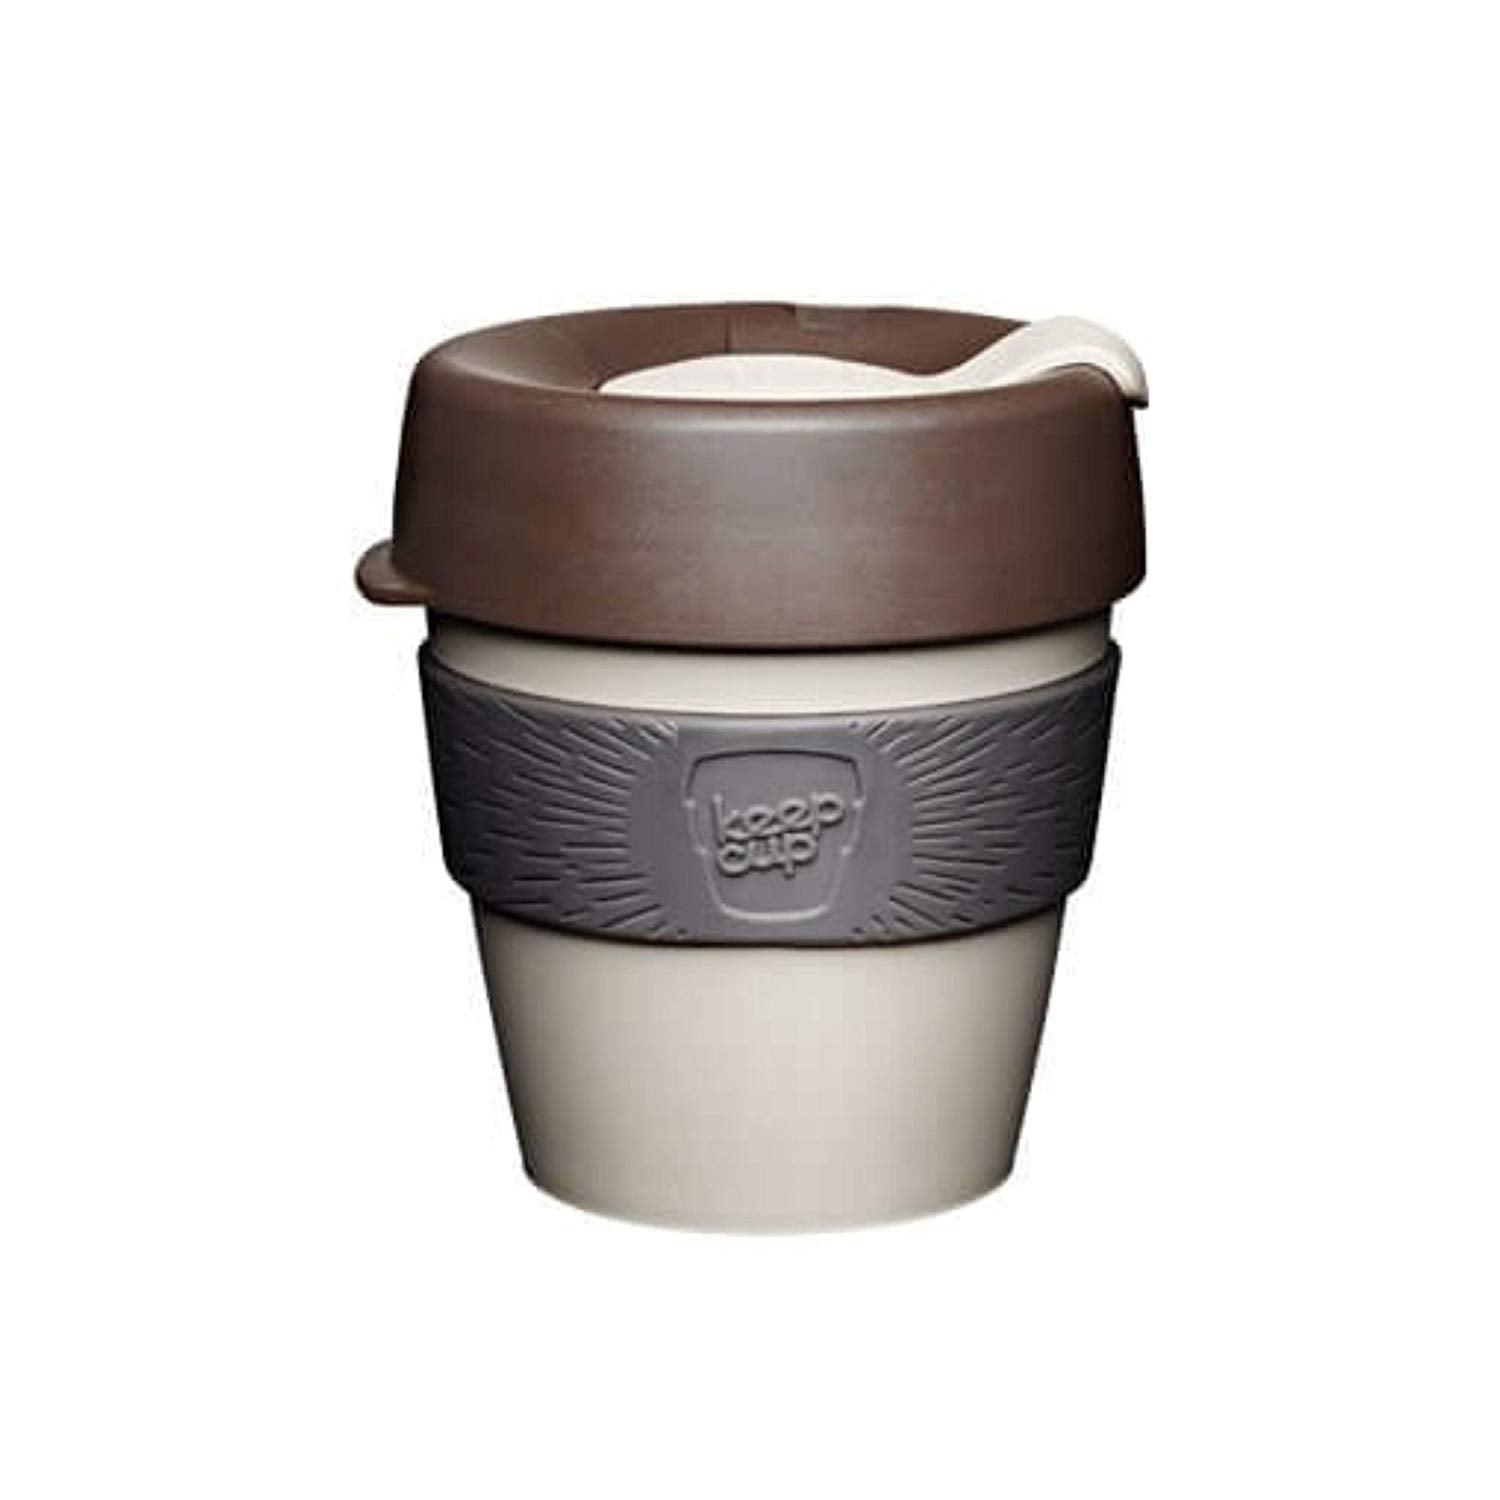 Keepcup Original Reusable Travel Mug 227ml 8oz Various